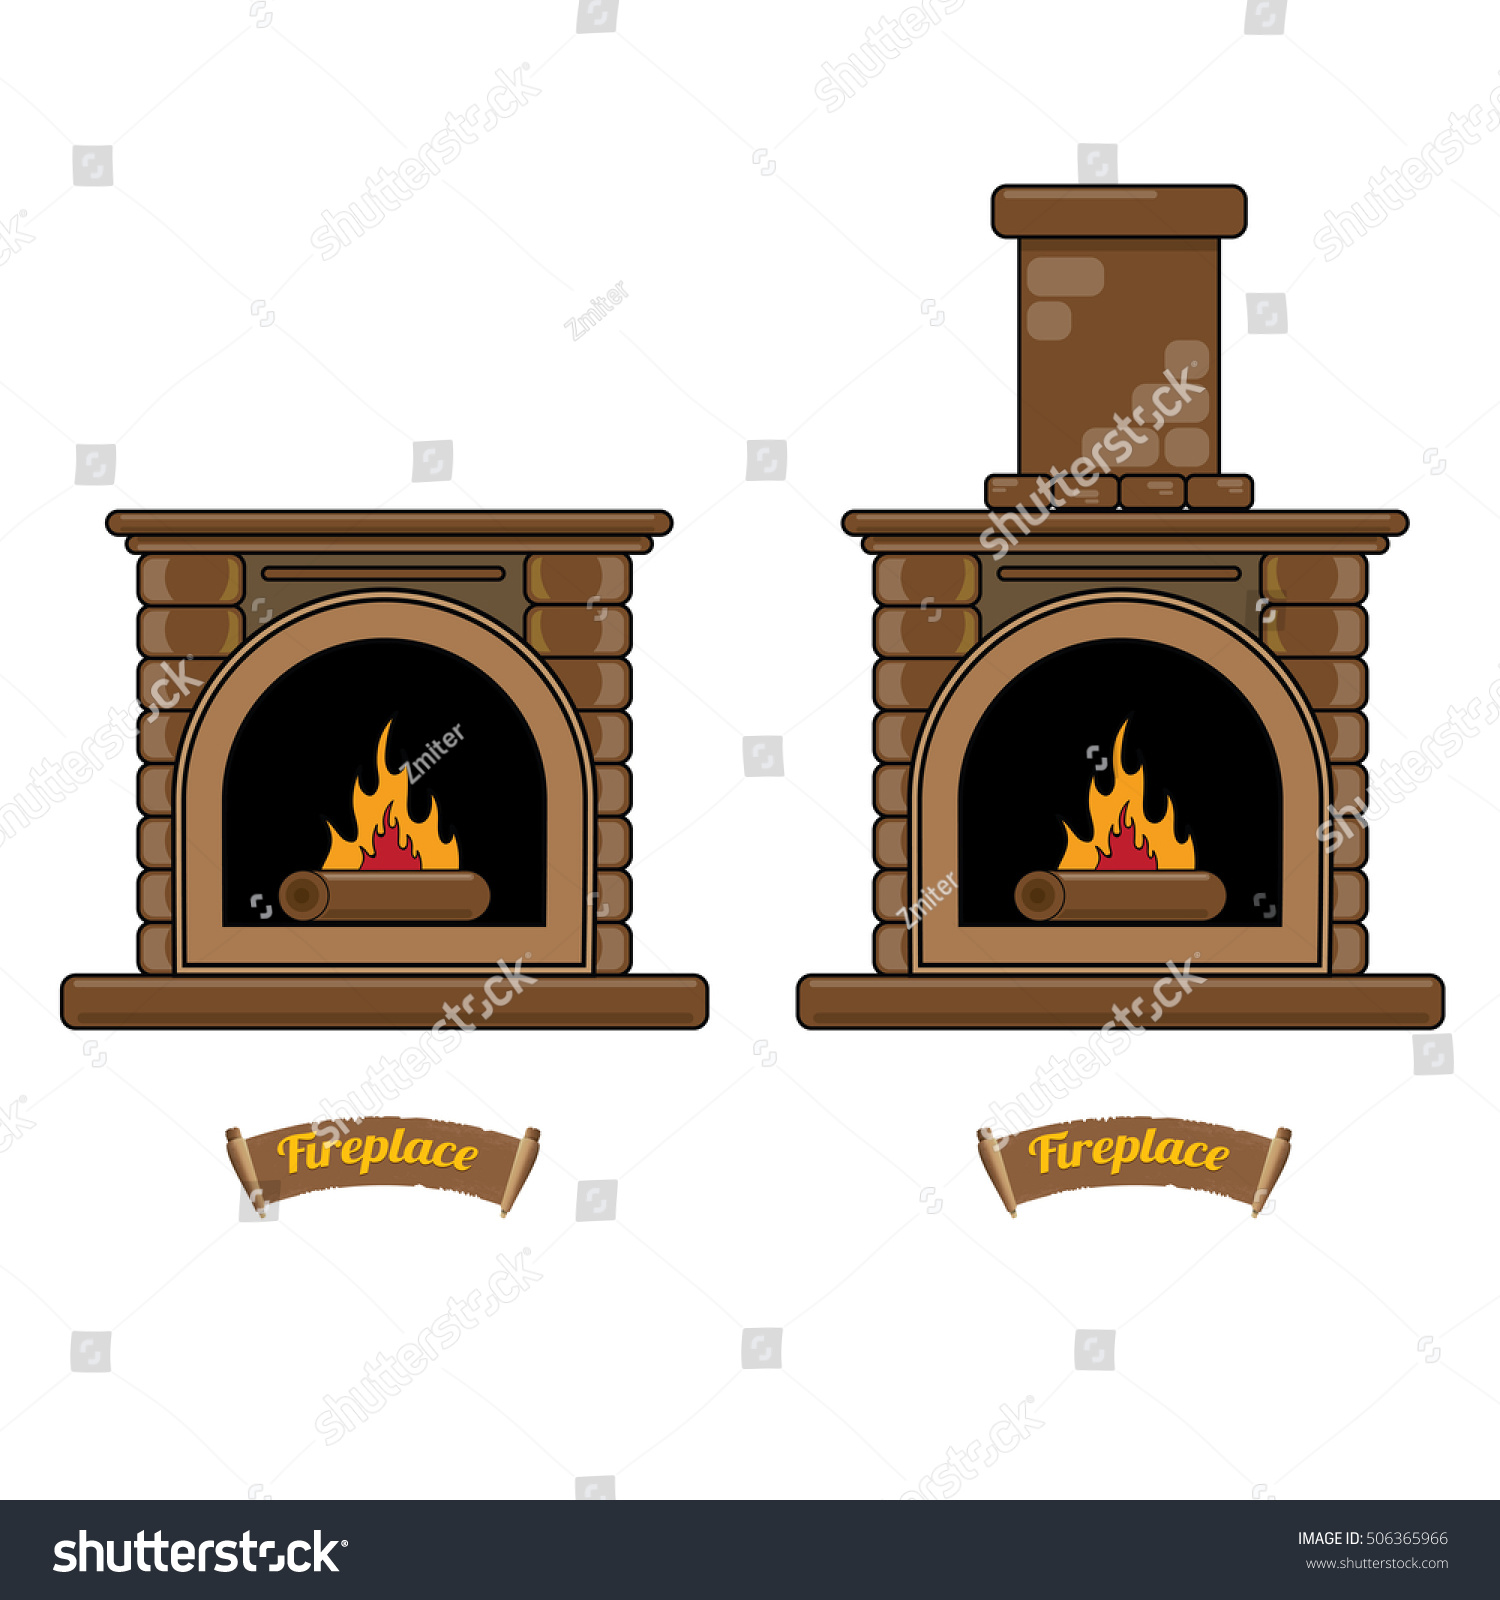 fireplace icon set isolated on white stock vector 506365966